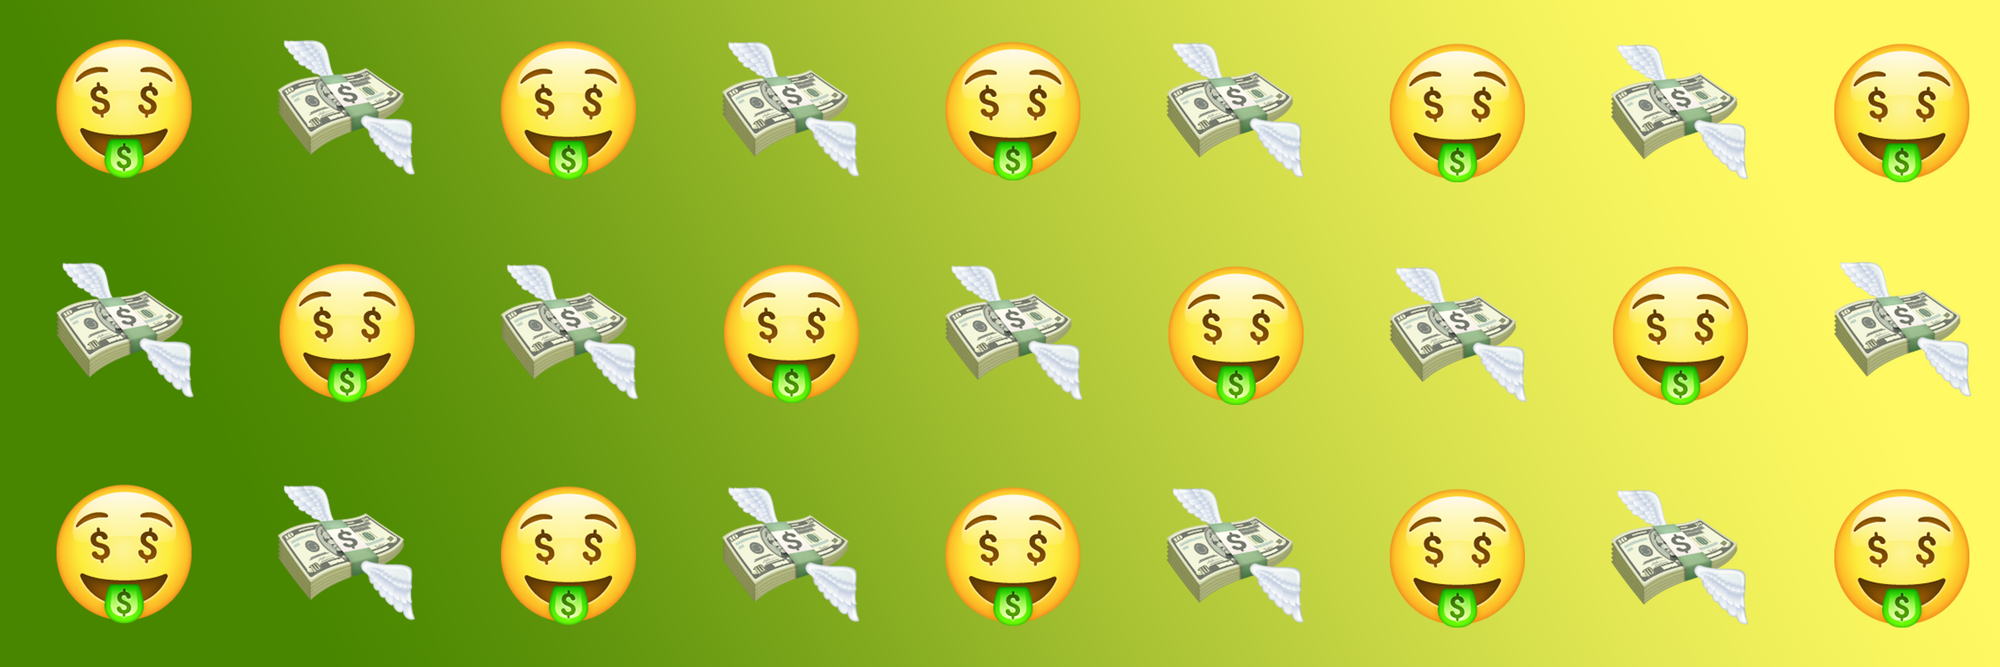 We have a quiz that tells you your money mood